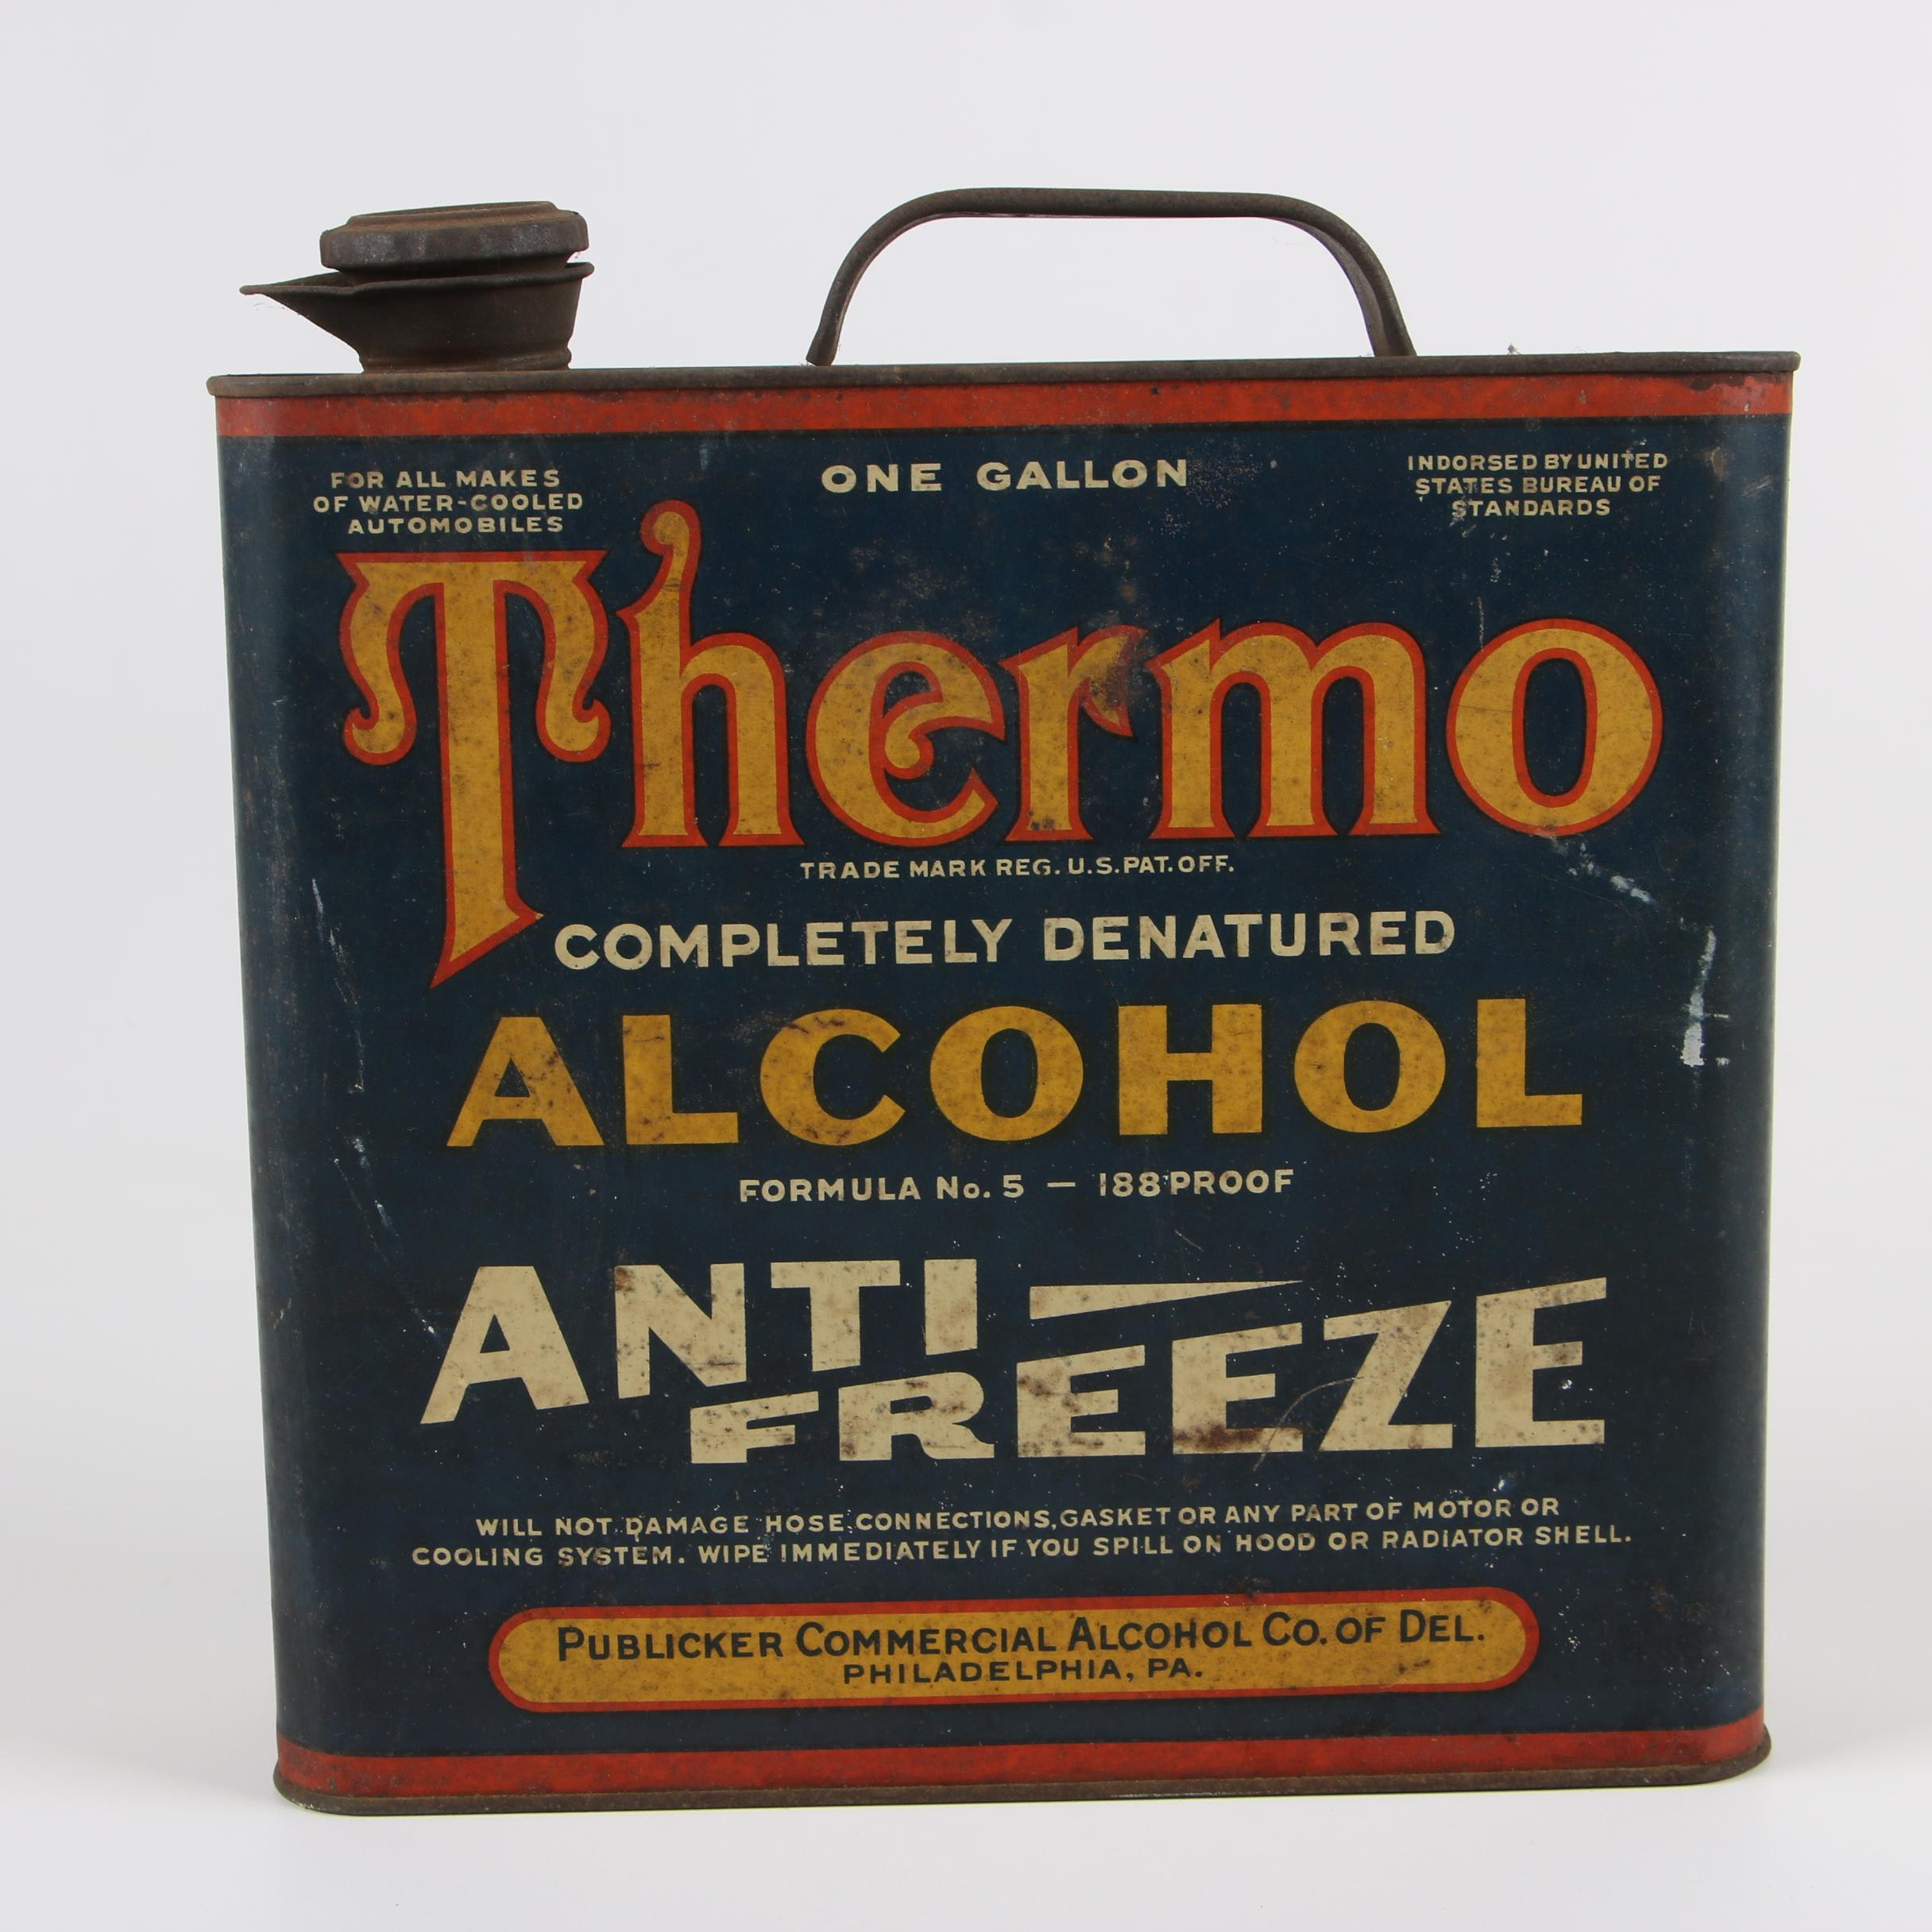 Thermo Completely Denatured Alcohol Antifreeze Container, Early 20th Century